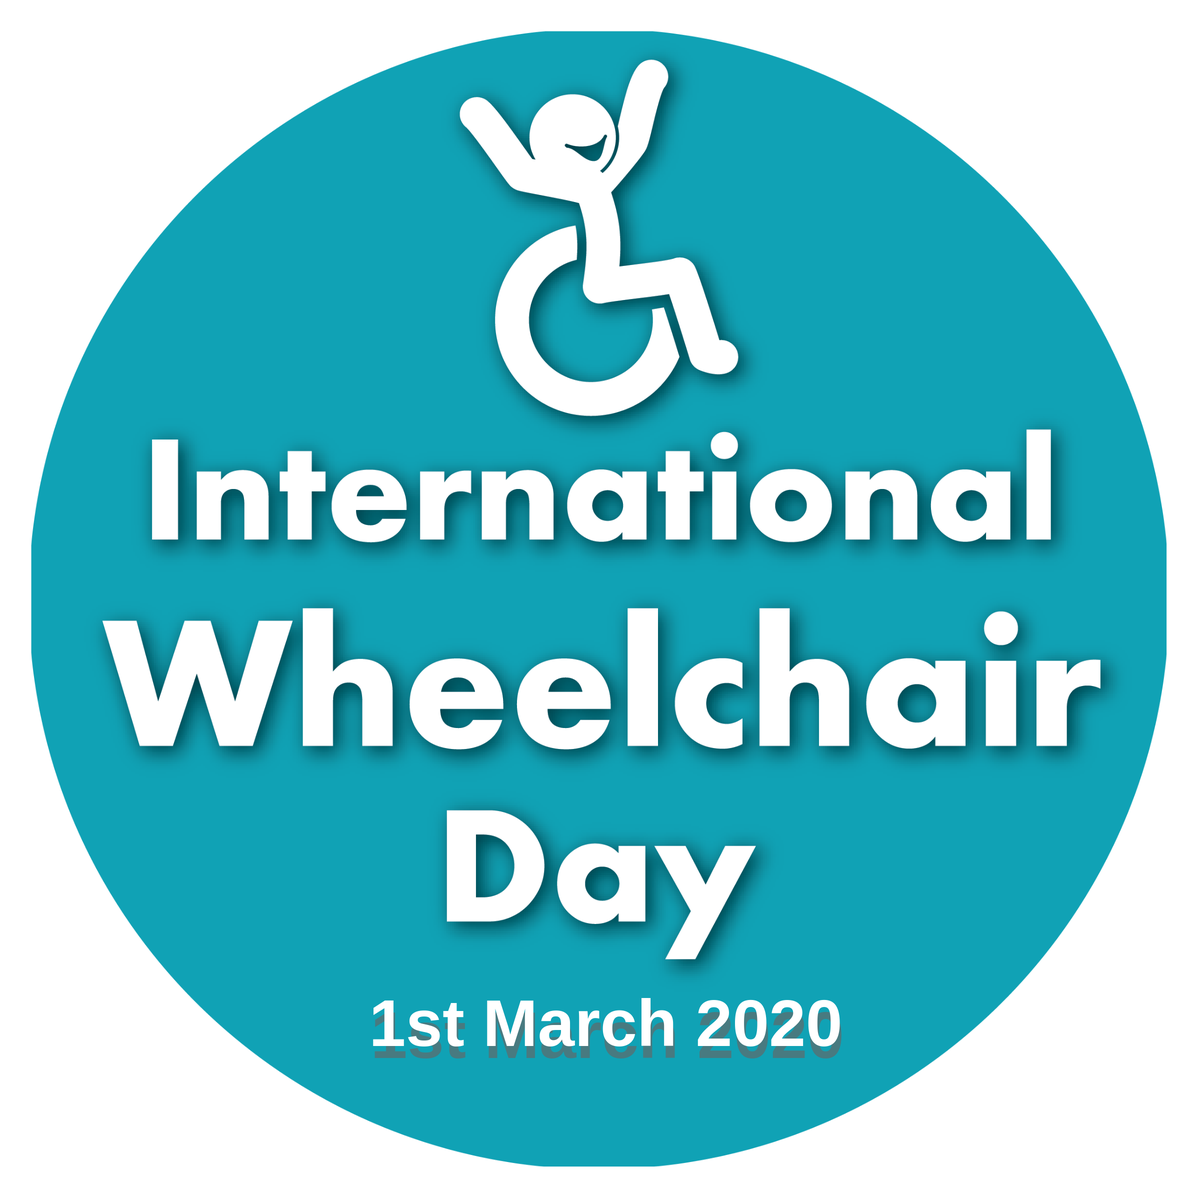 Image is the logo for Internation Wheelchair Day 2020, which is a blue cirlce with a cheerful stickman in a wheelchair raising its arms in the air